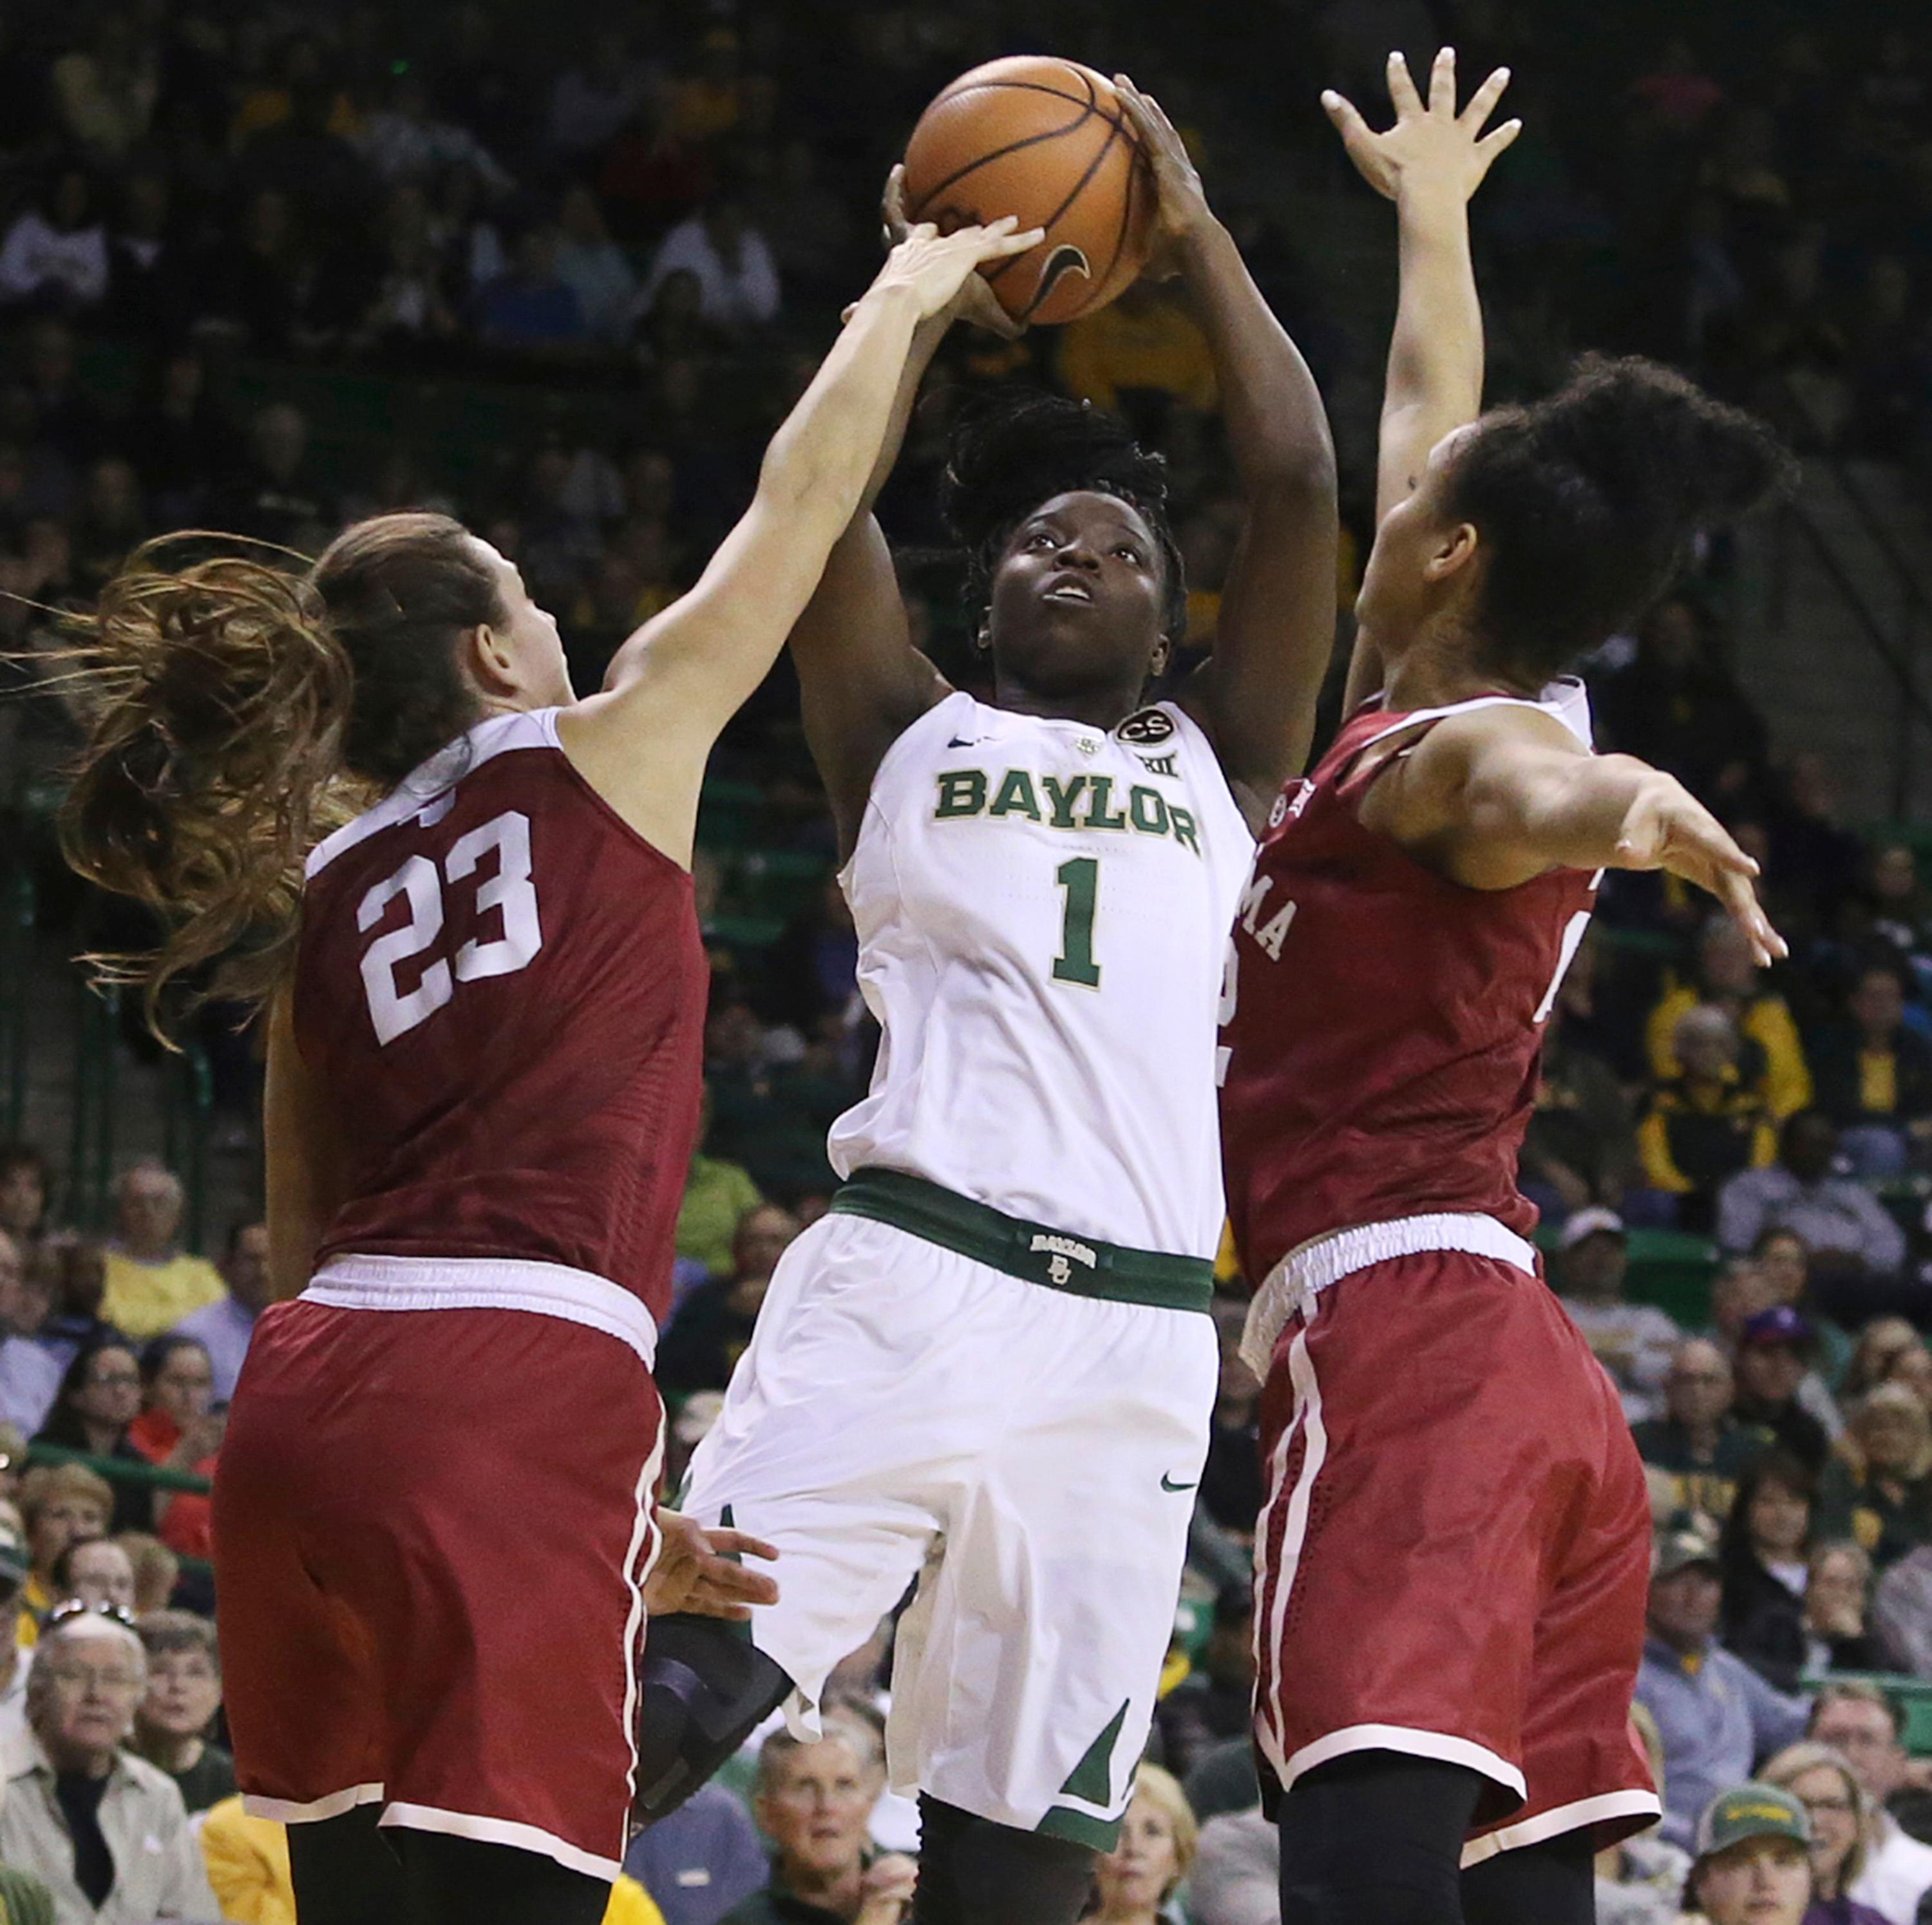 Baylor forward Dekeiya Cohen, center, shoots between Oklahoma guard Maddie Manning, left, and Oklahoma guard Ana Llanusa, right, during the first half of an NCAA college basketball game, Monday, Feb. 5, 2018, in Waco, Texas. (AP Photo/Jerry Larson)